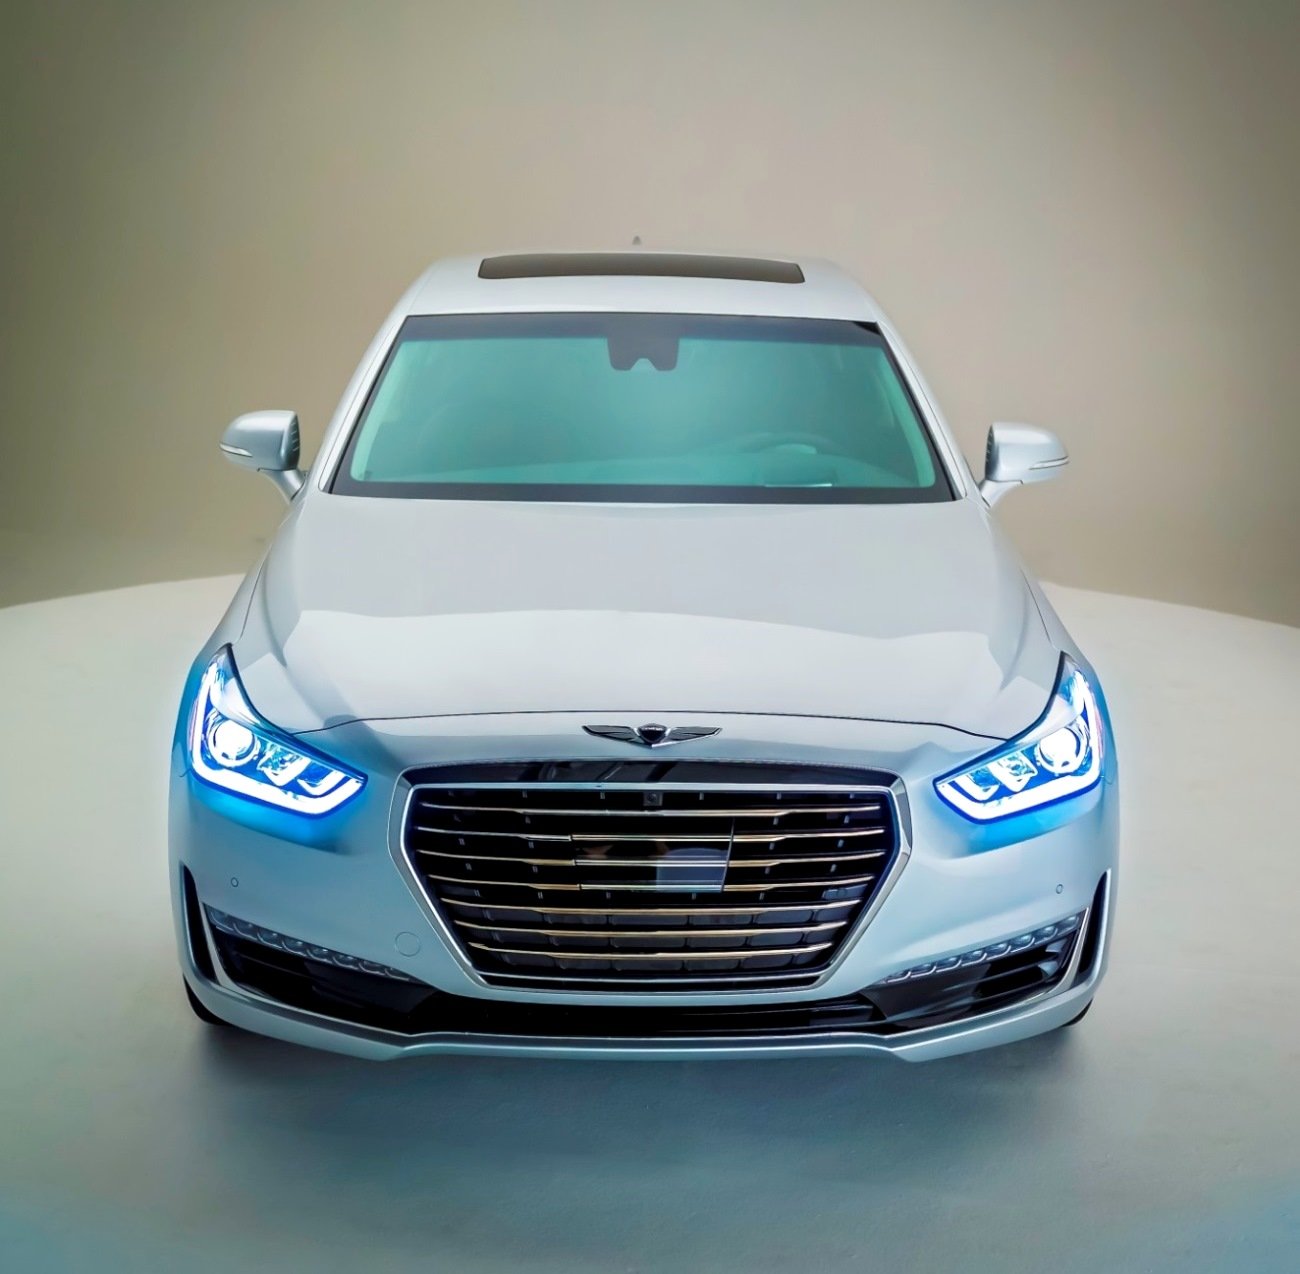 a look at hyundai genesis g90 luxury sedan. Black Bedroom Furniture Sets. Home Design Ideas